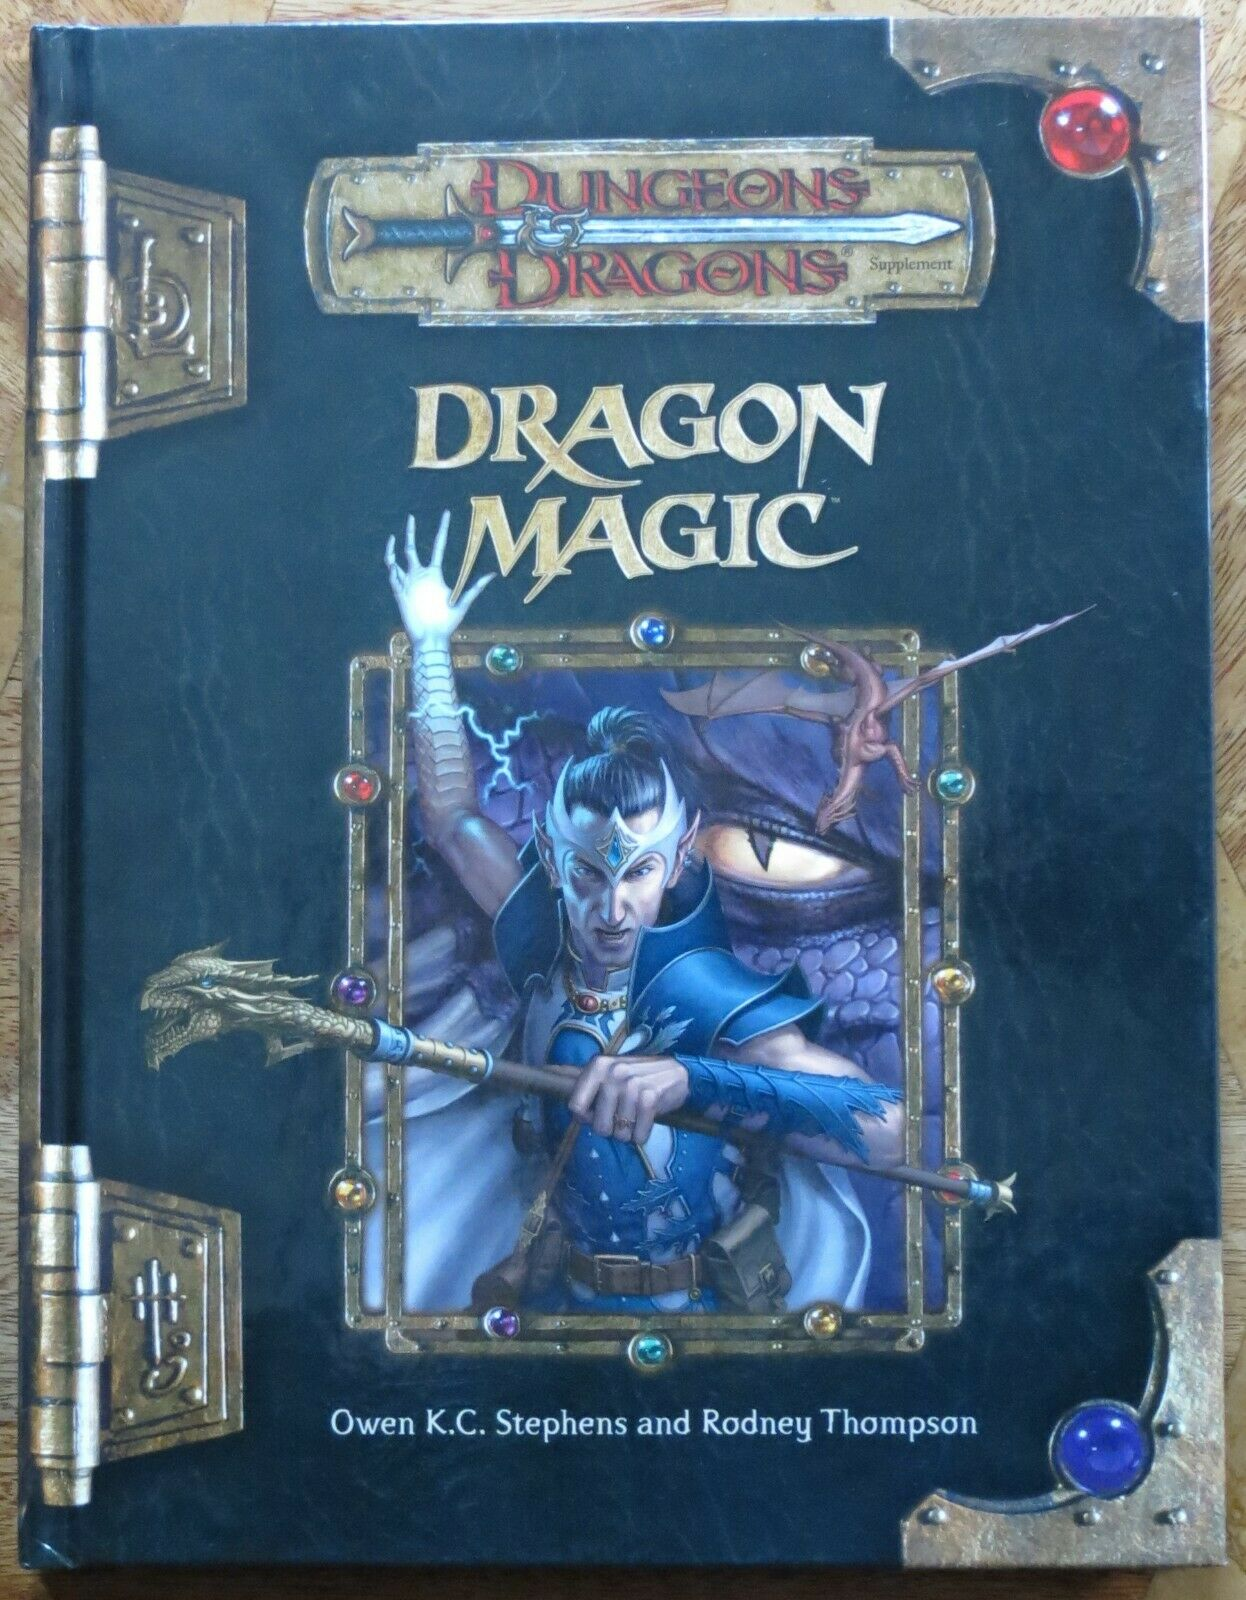 Dungeons & Dragons - Dragon Magic D20 Excellent Condition - AD&D (2006)